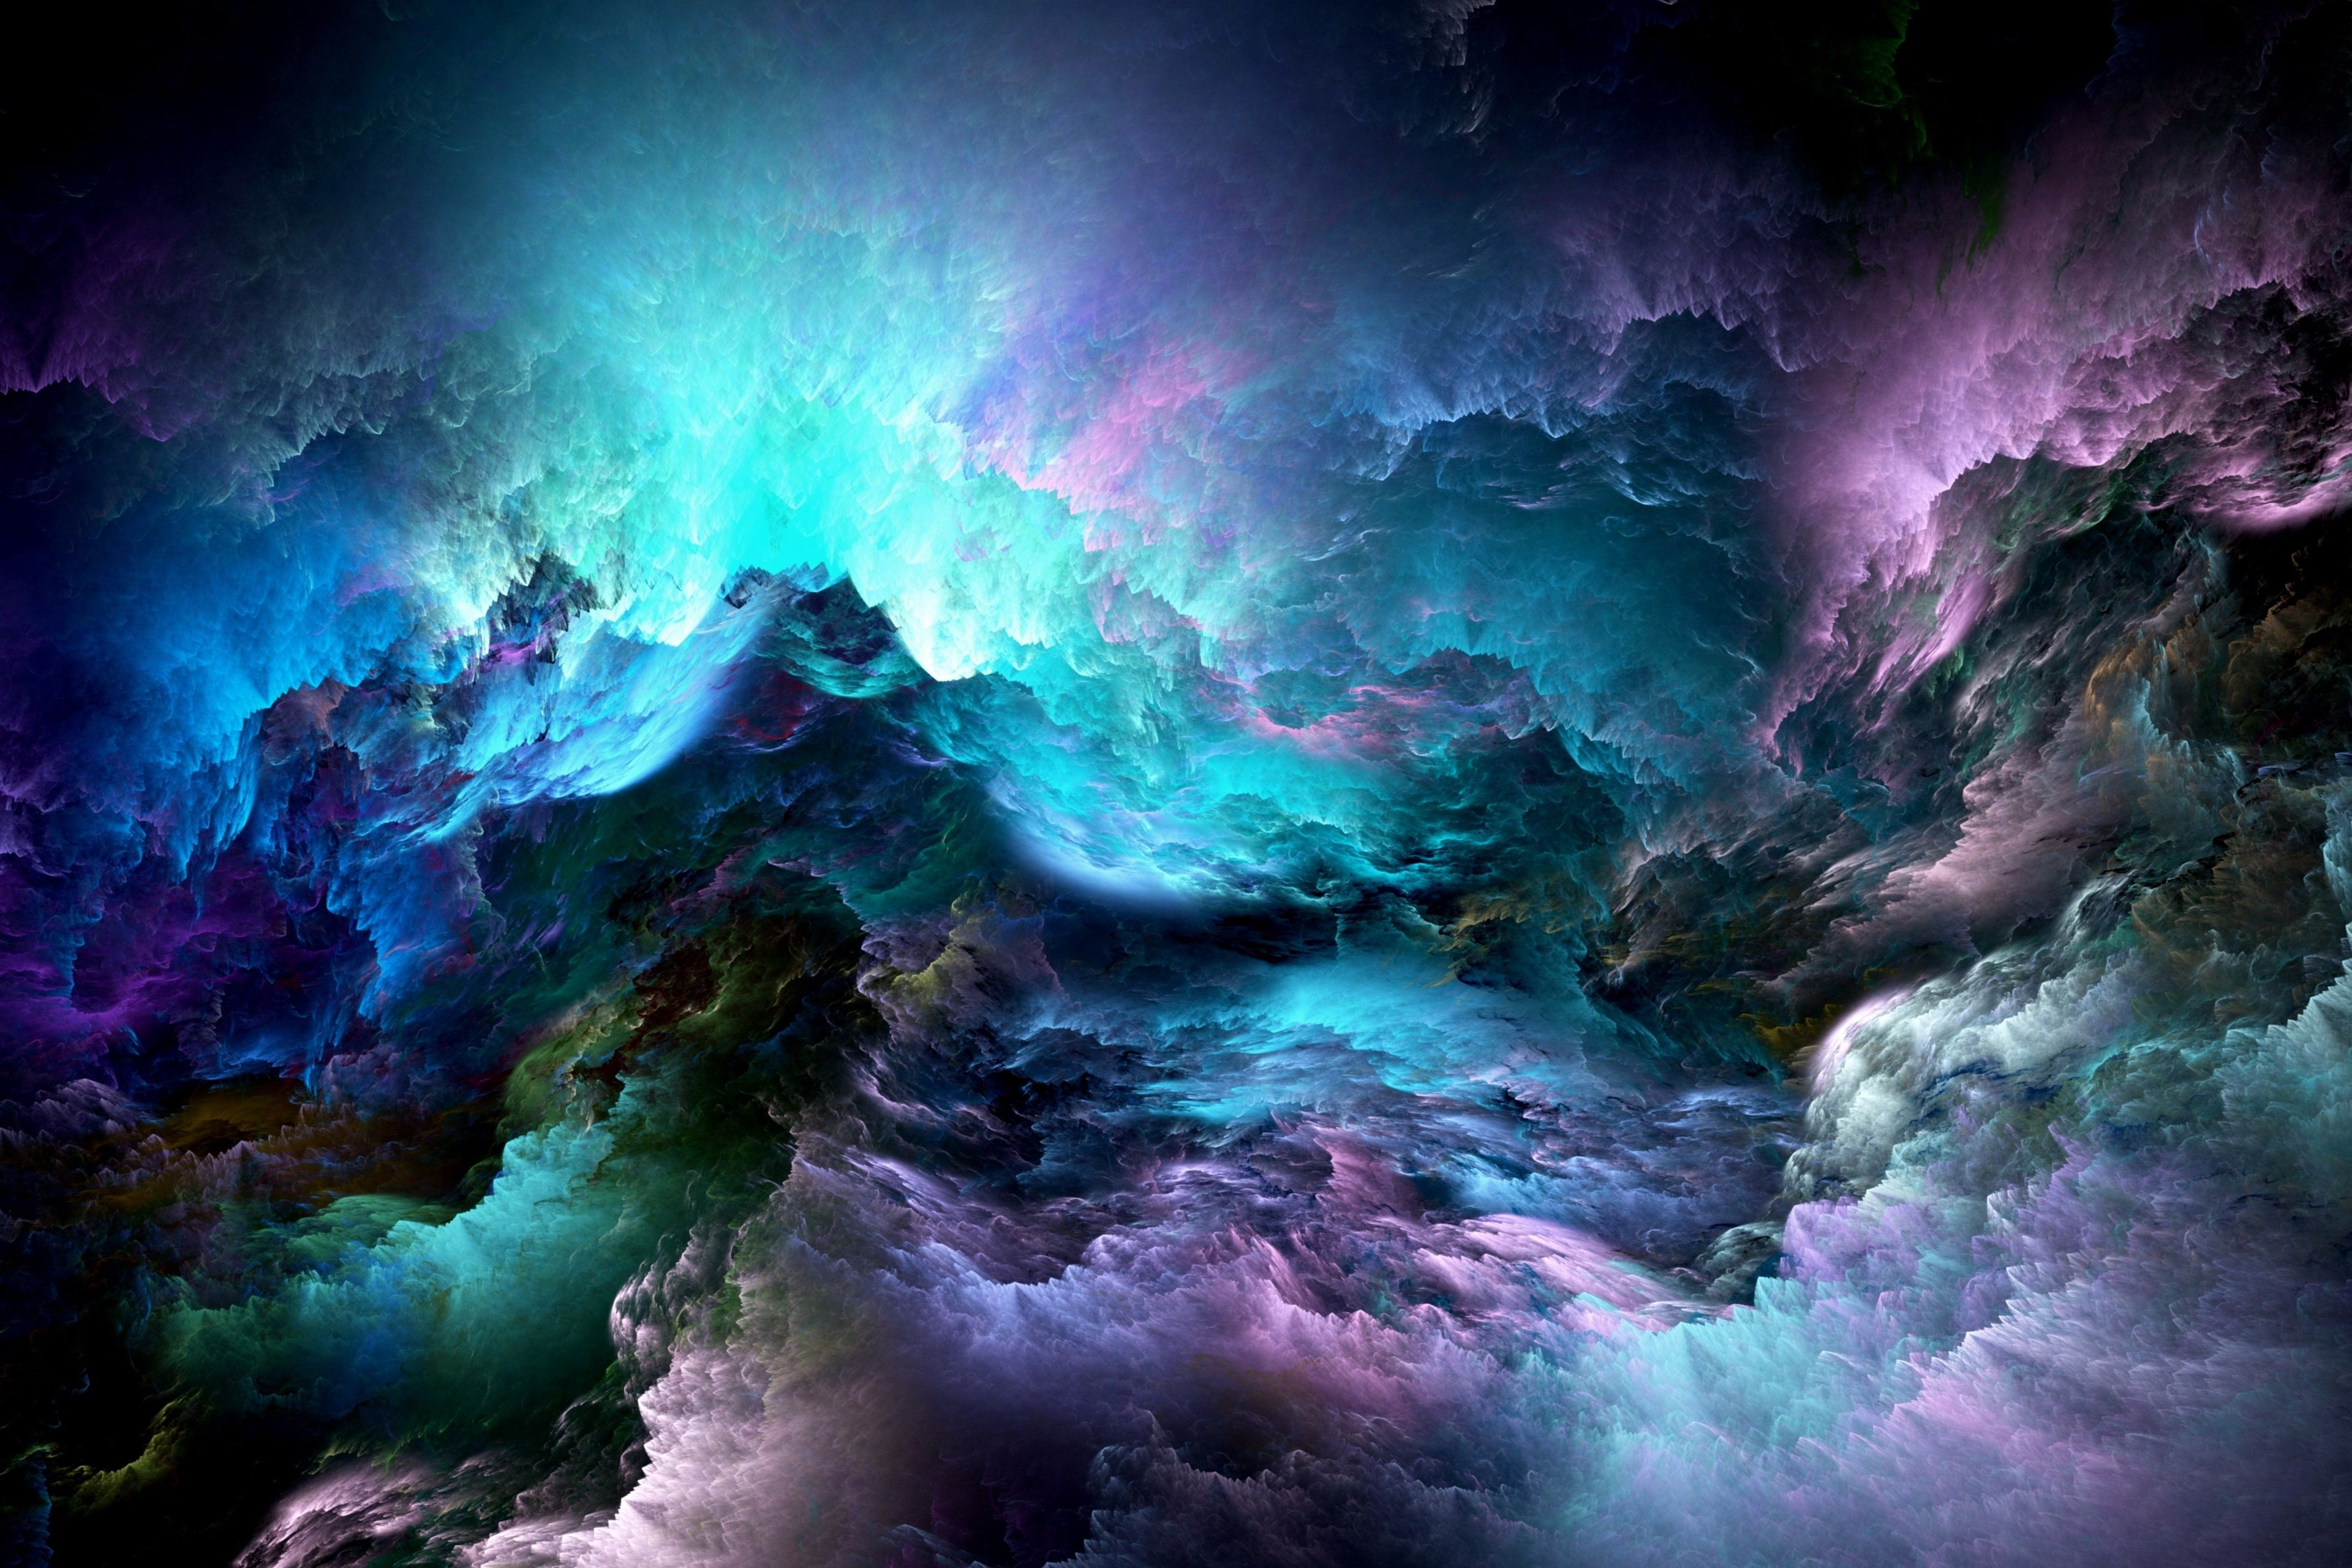 3840x2560 abstract clouds 4k background wallpaper hd